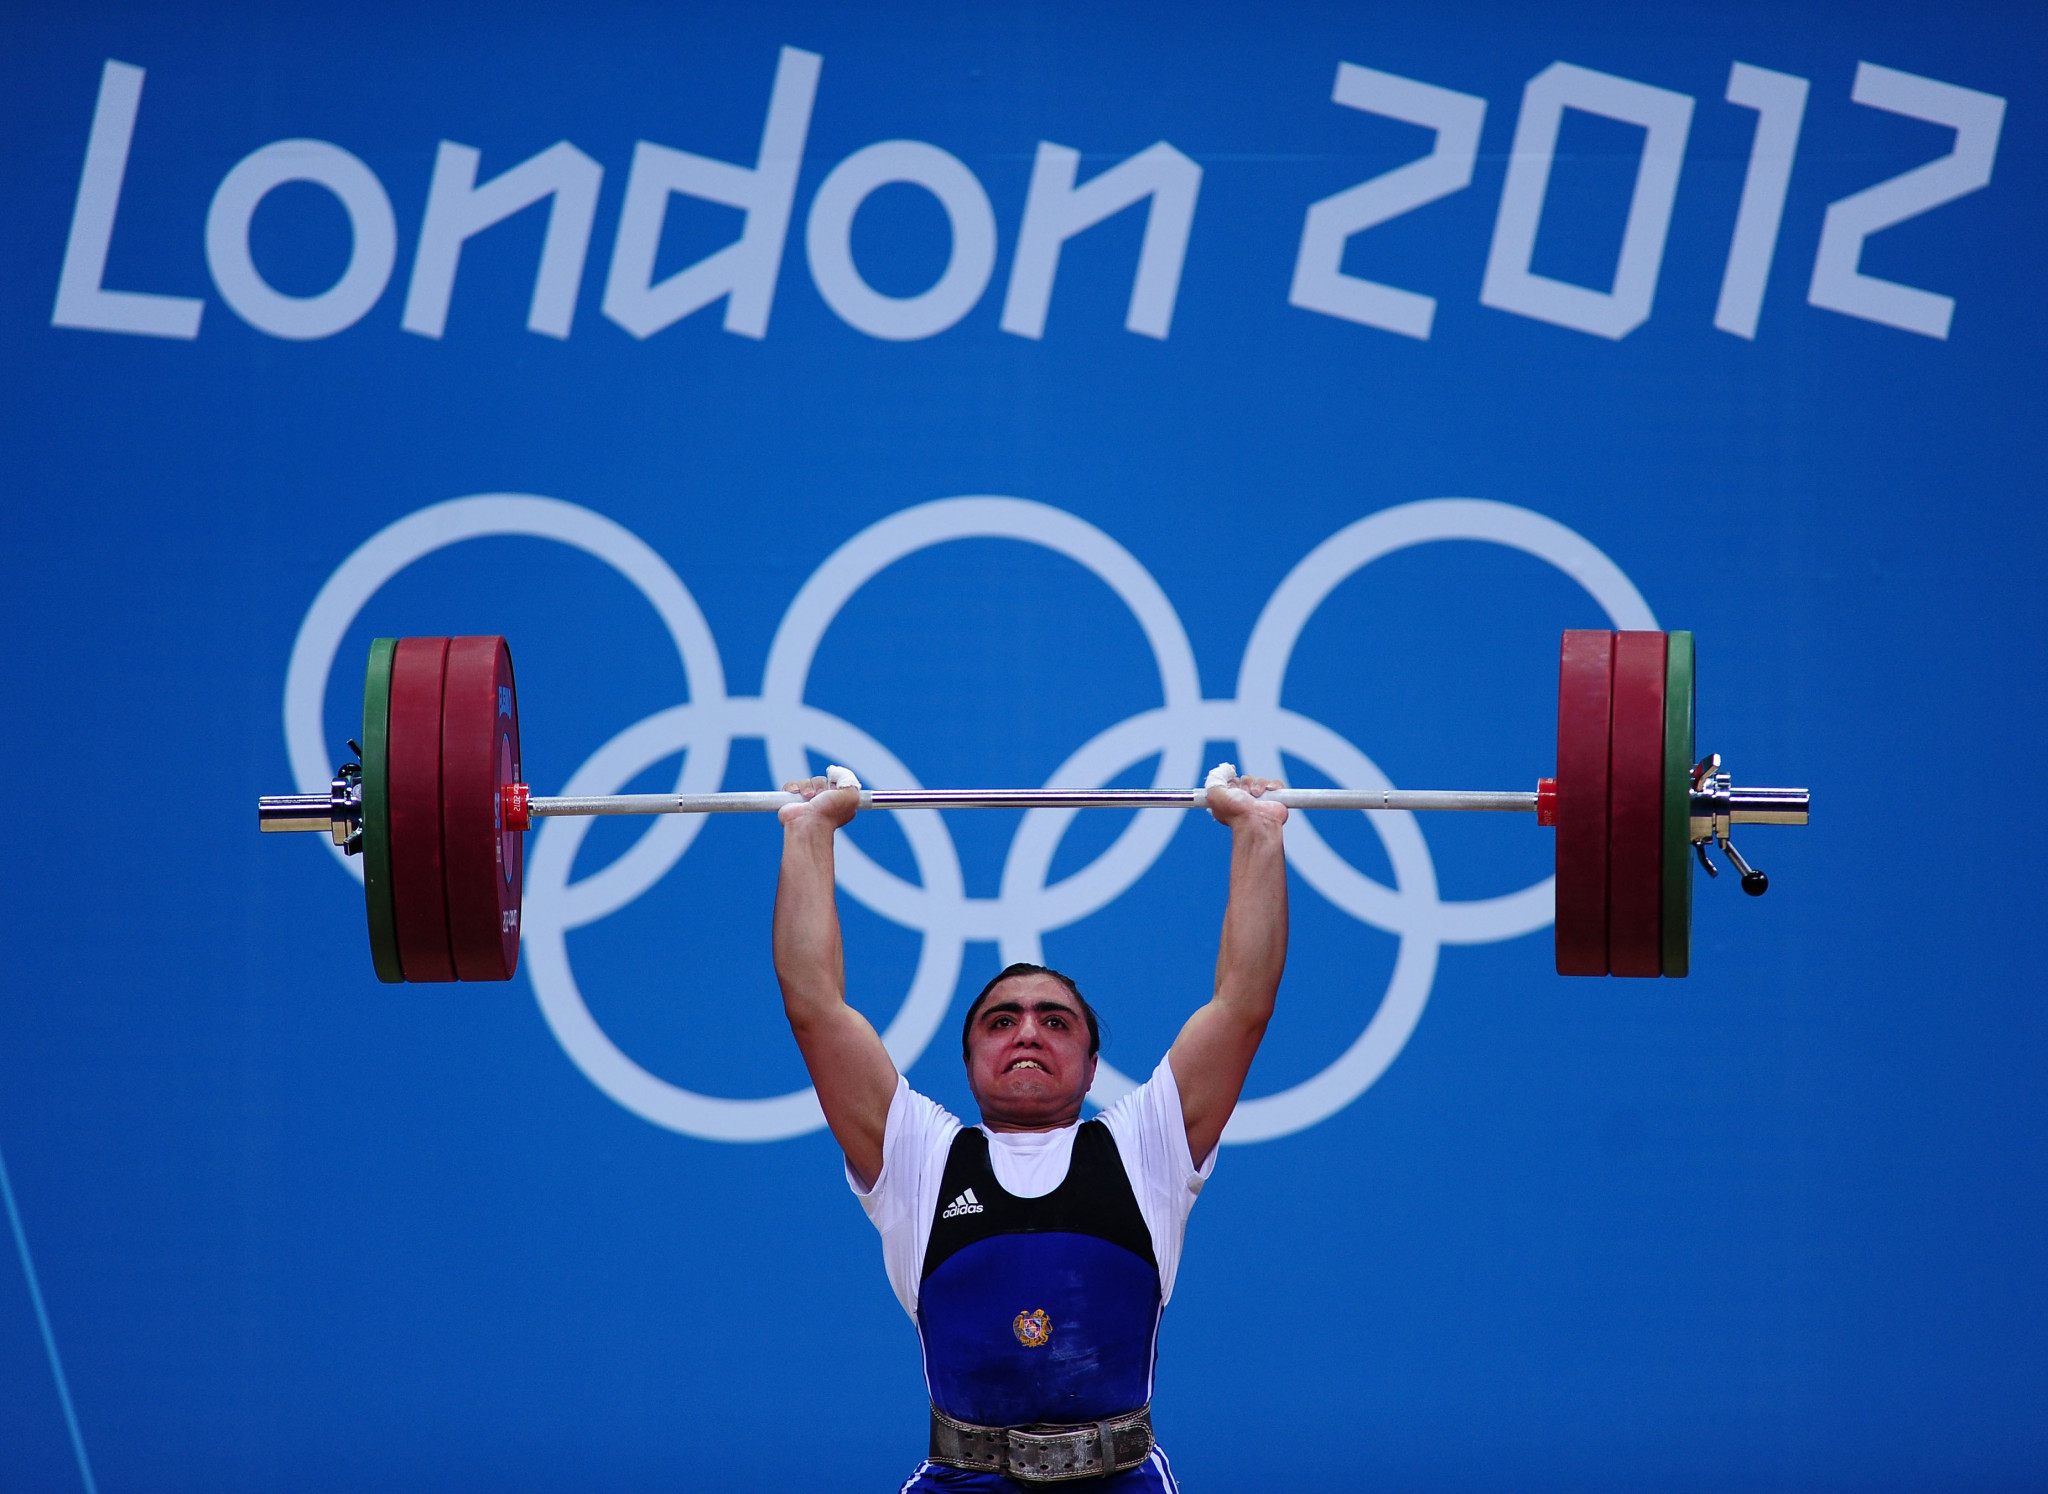 Armenia's Melanie Daluzyan has been disqualified from the women's 69kg weightlifting event at the London 2012 Olympic Games ©Getty Images